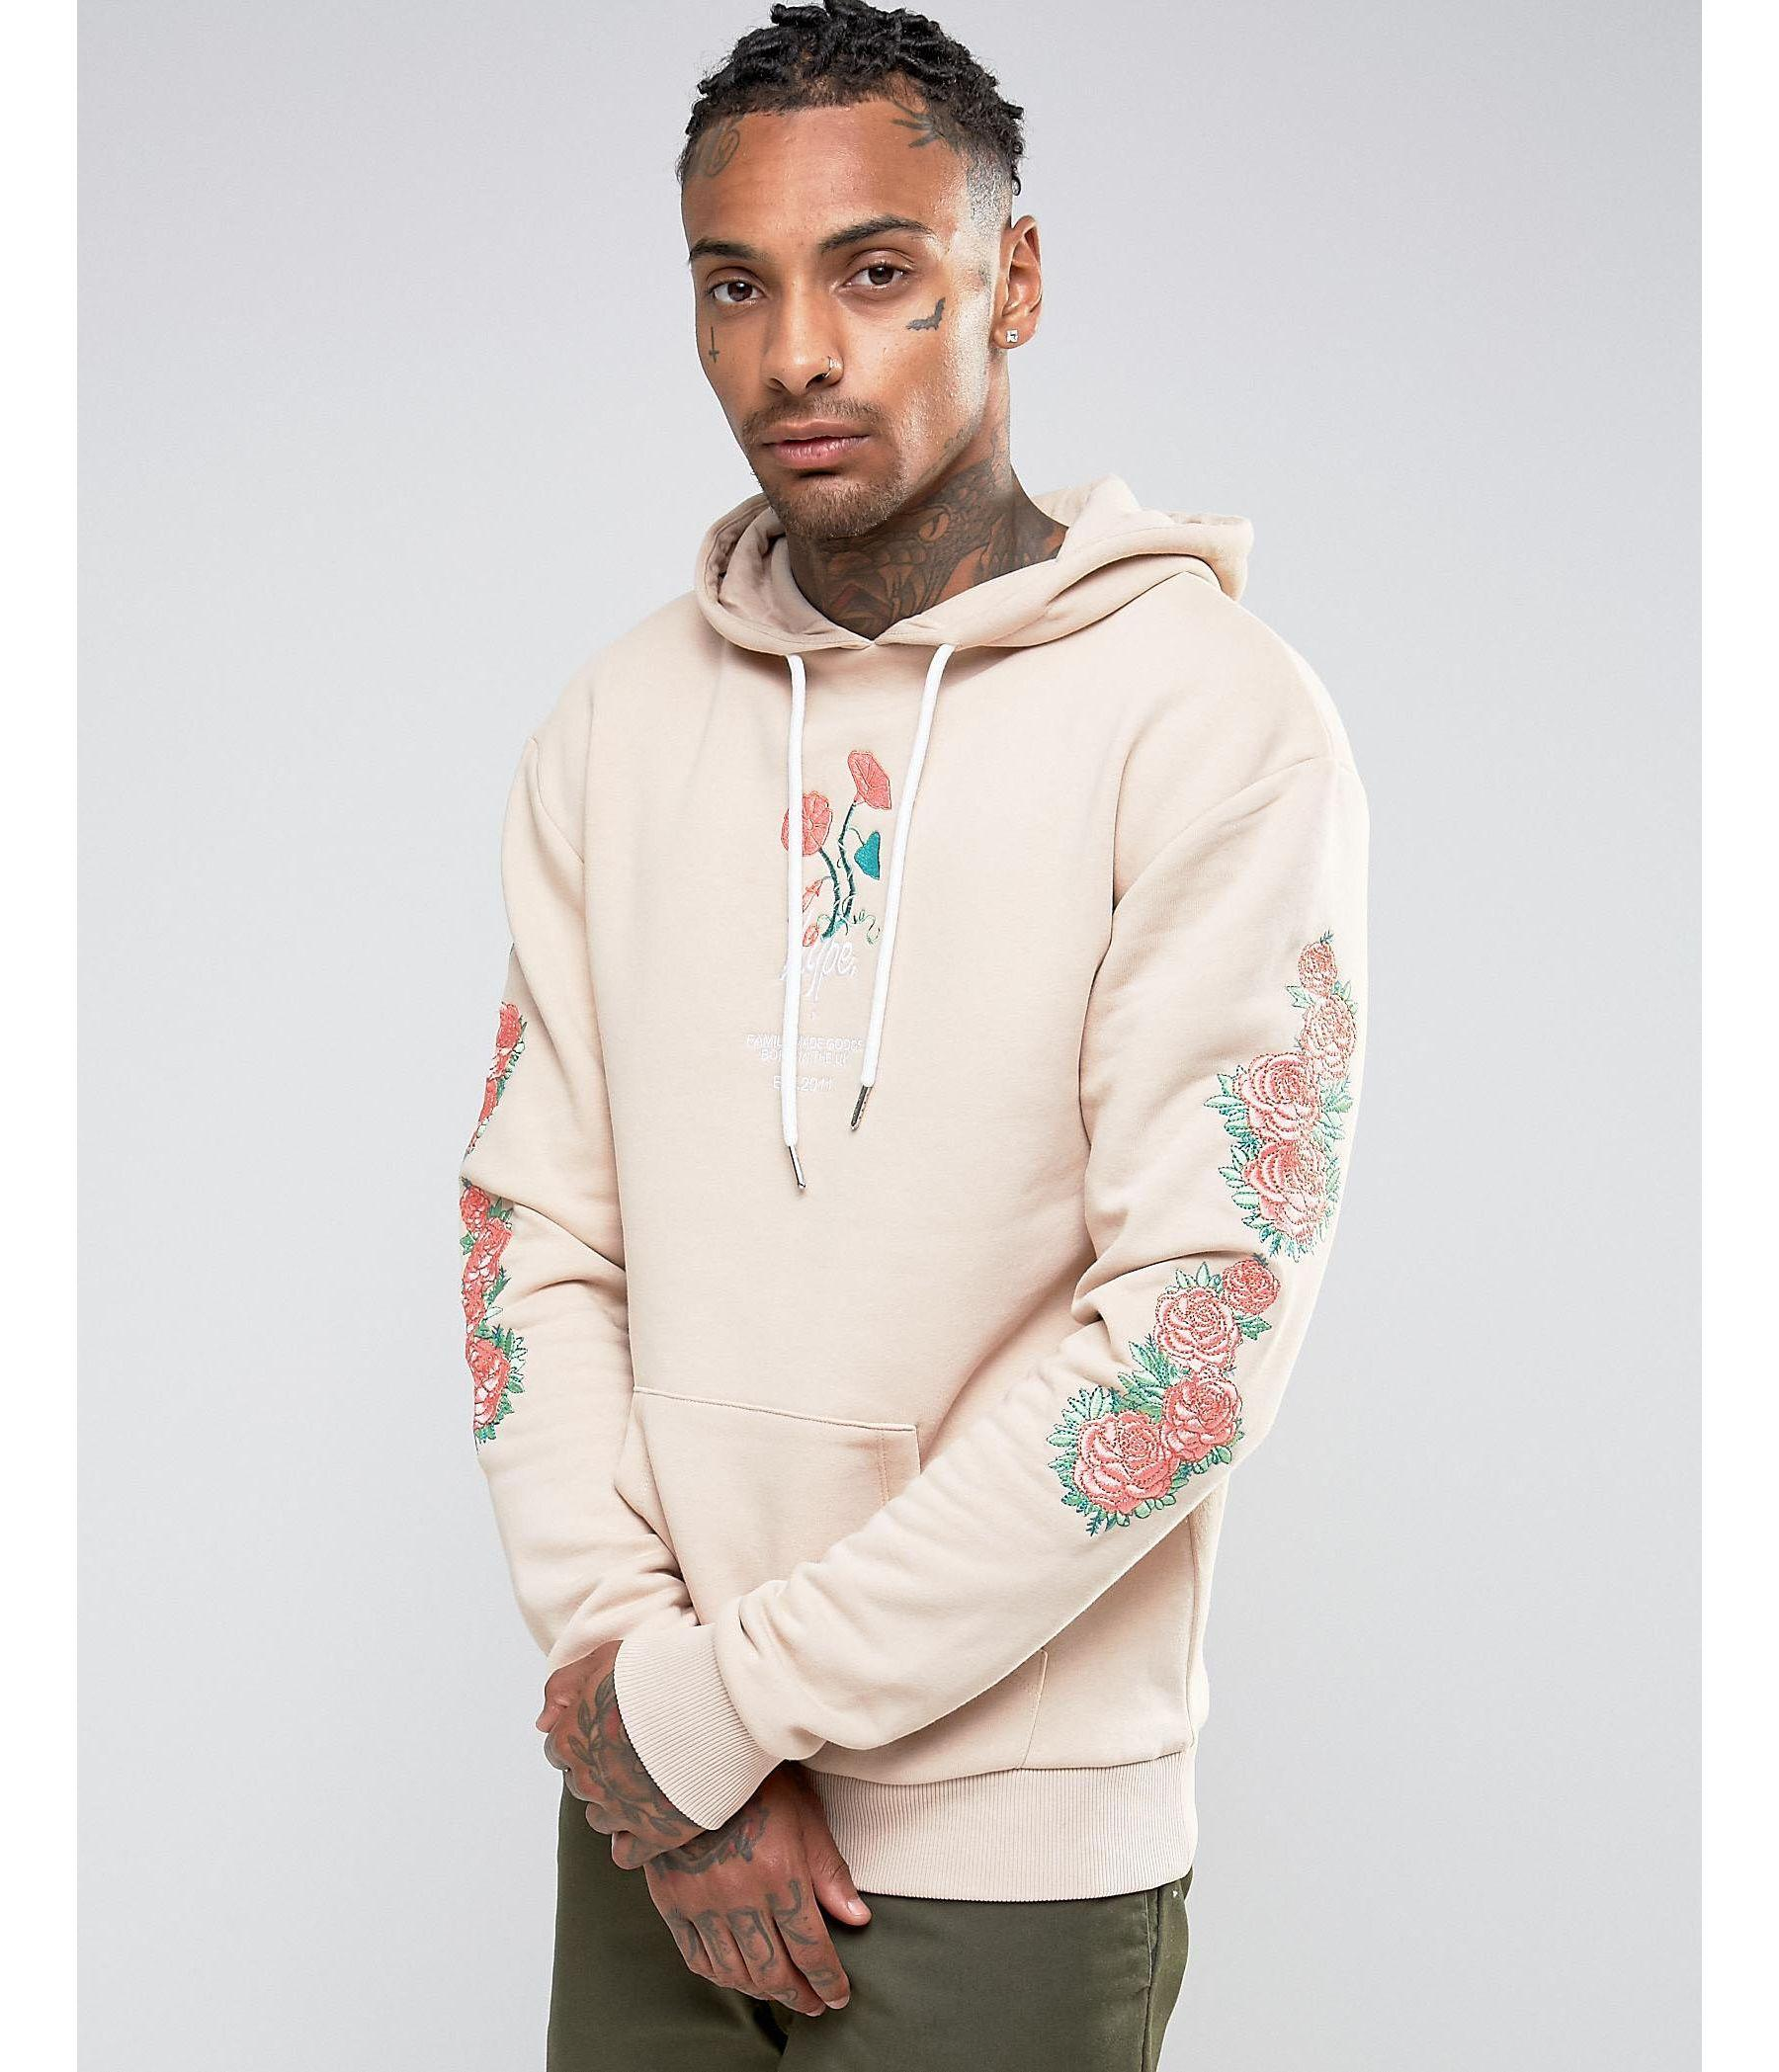 Hype hoodie with embroidered floral sleeves in natural for